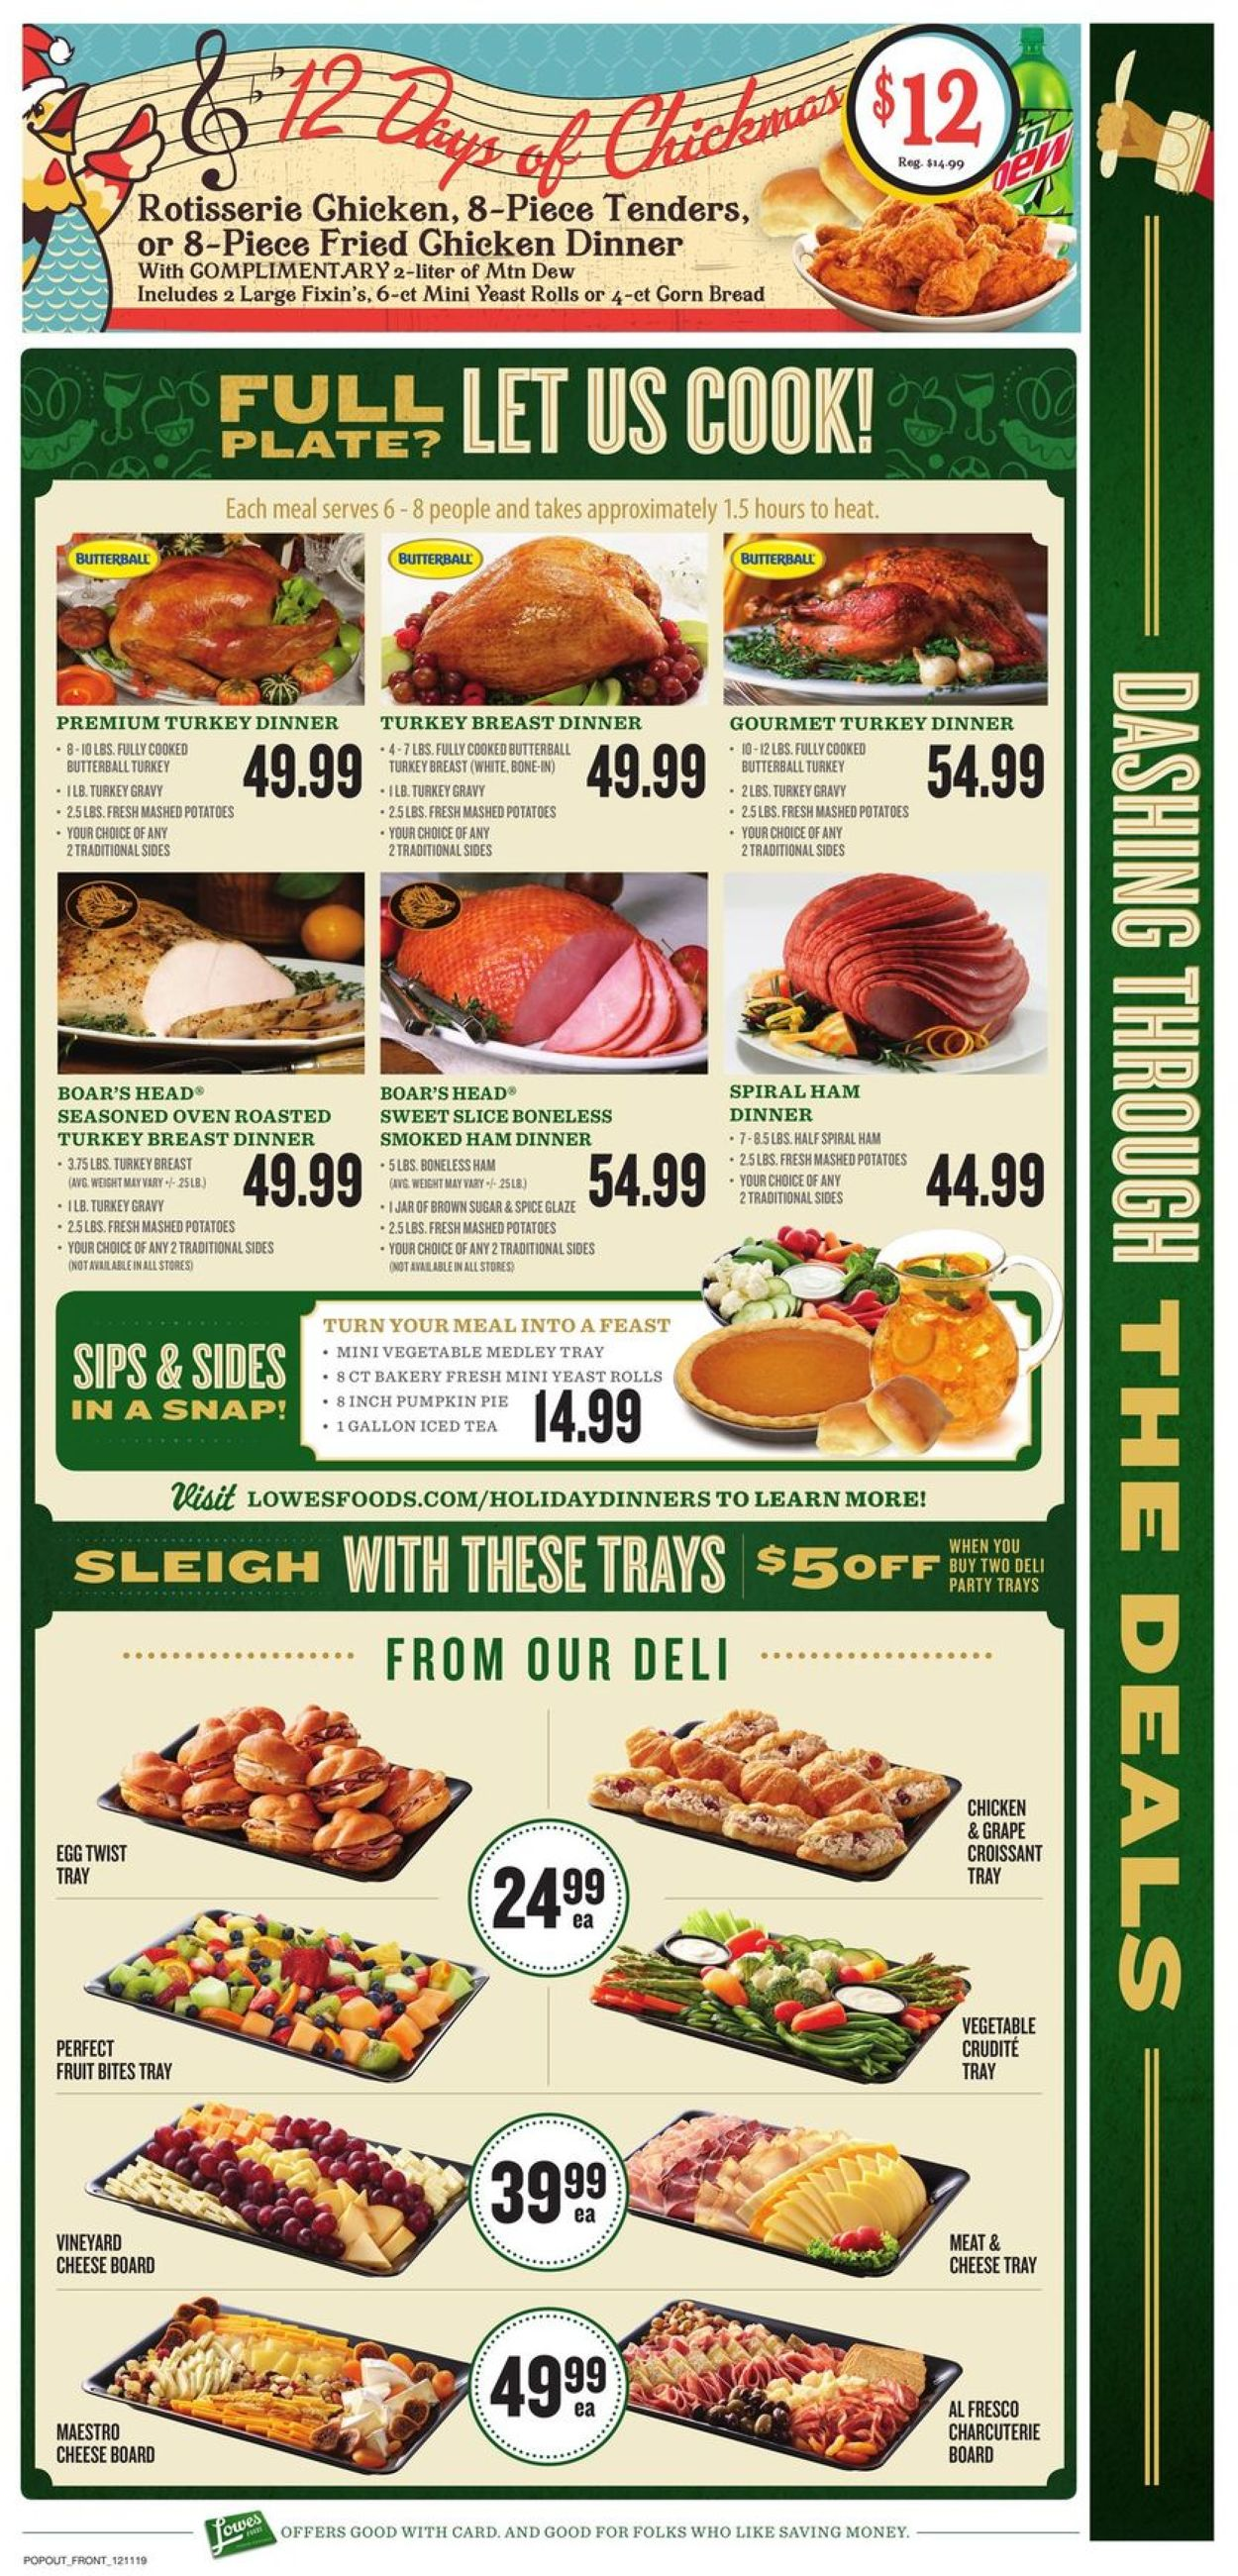 Lowes Foods Christmas Dinners 2020 Lowes Foods   Holiday Ad 2019 Current weekly ad 12/11   12/17/2019